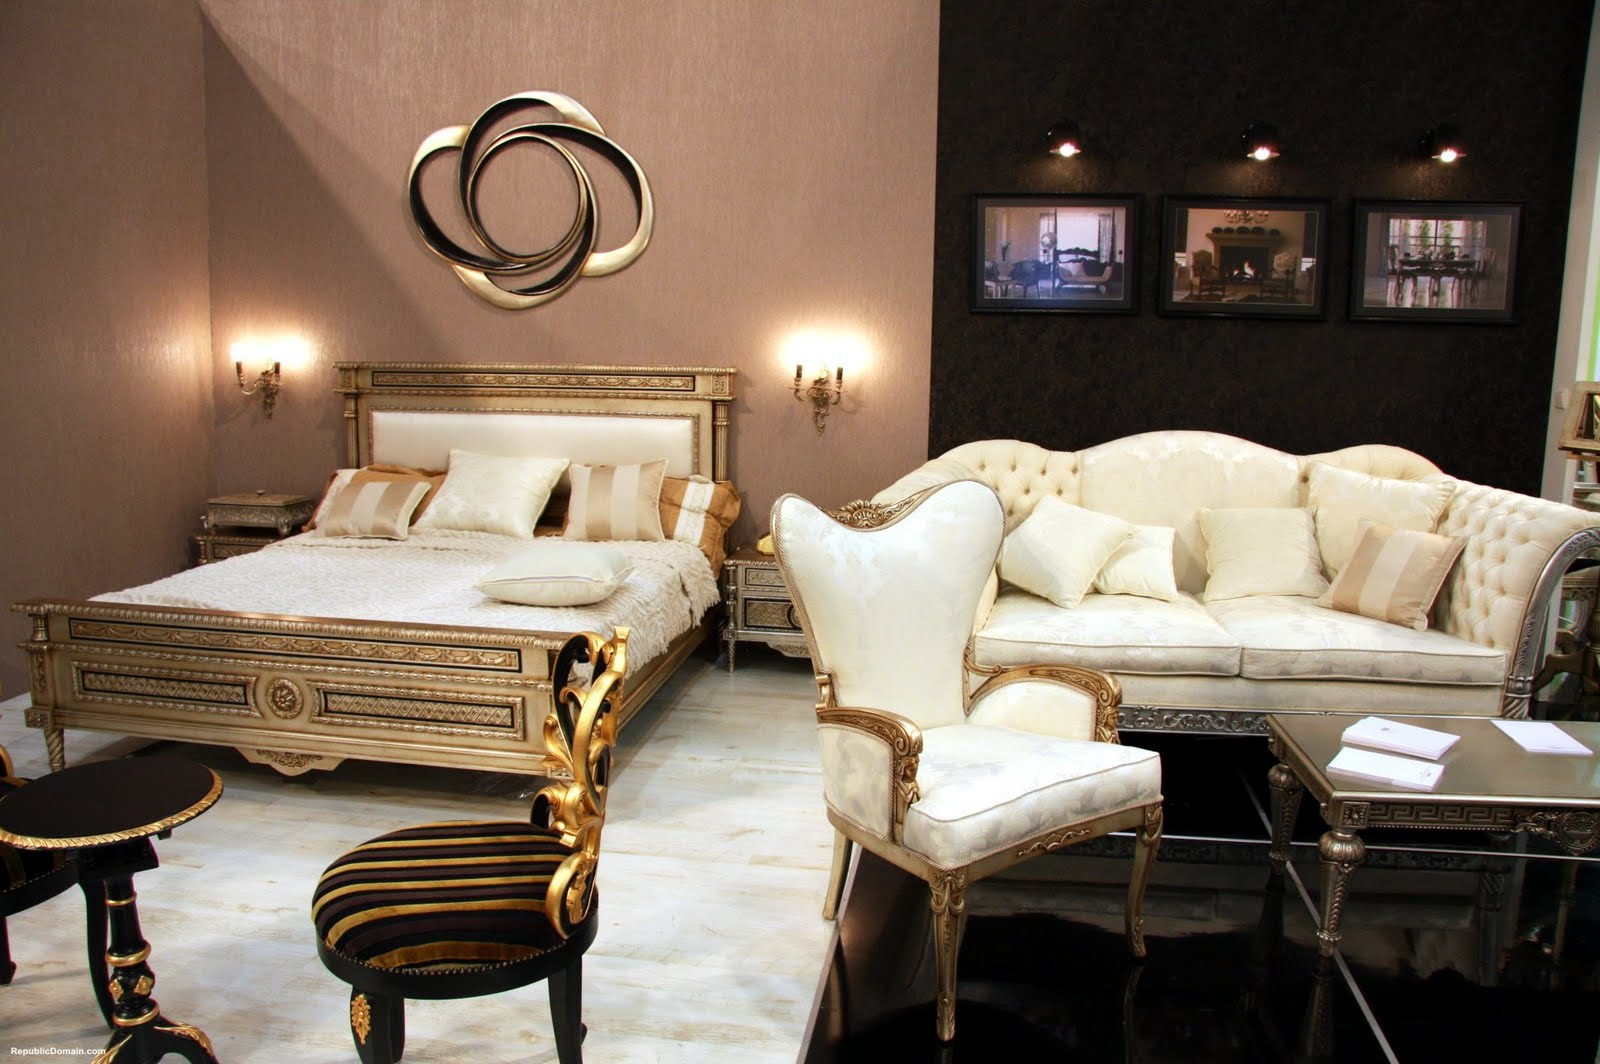 Room furniture furniture designs for Modern luxury furniture